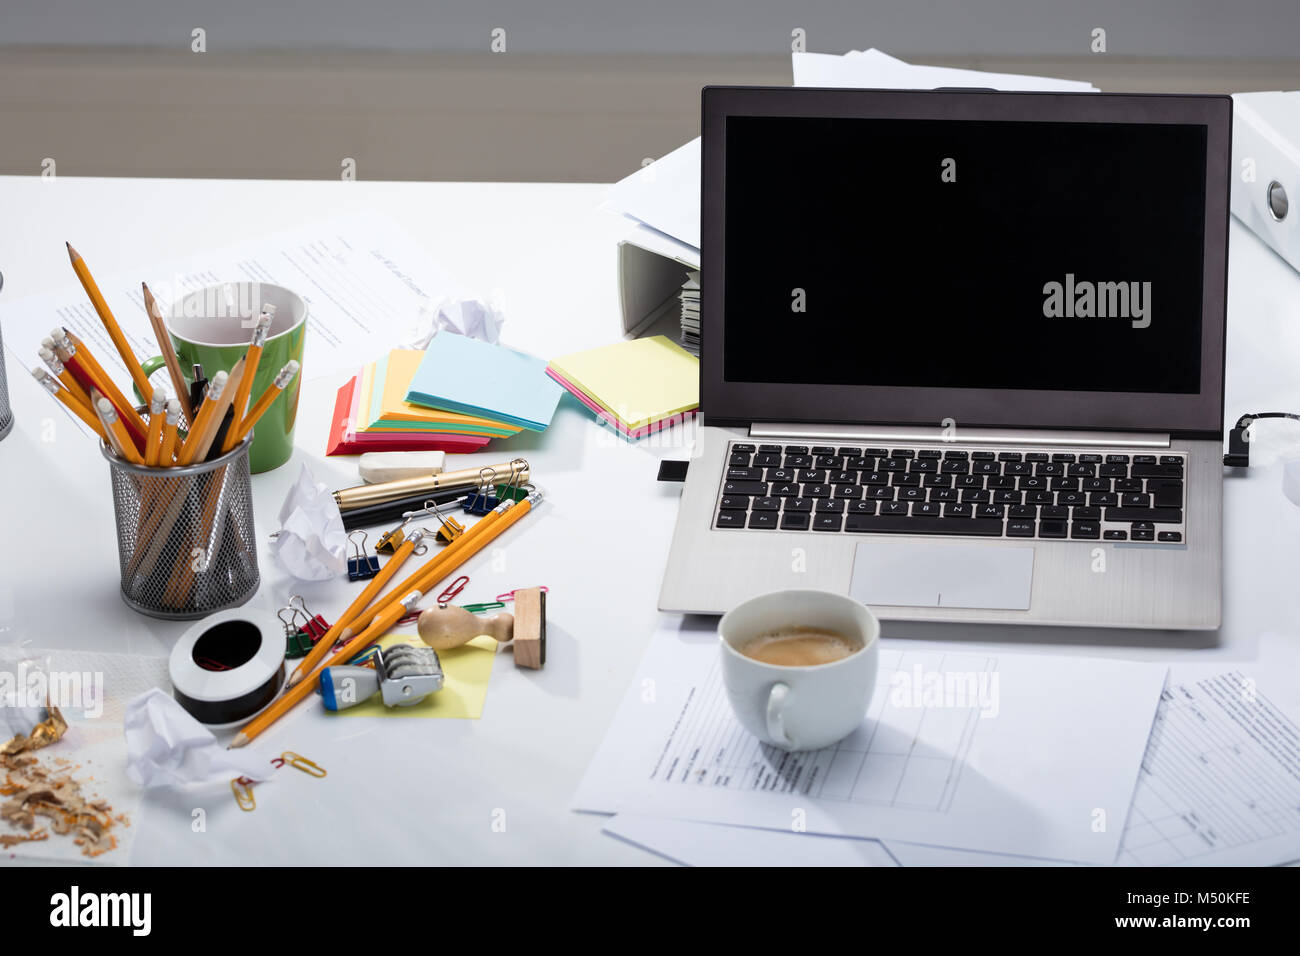 Laptop And Coffee Cup On The Document Paper Over The Messy Desk In The Office - Stock Image